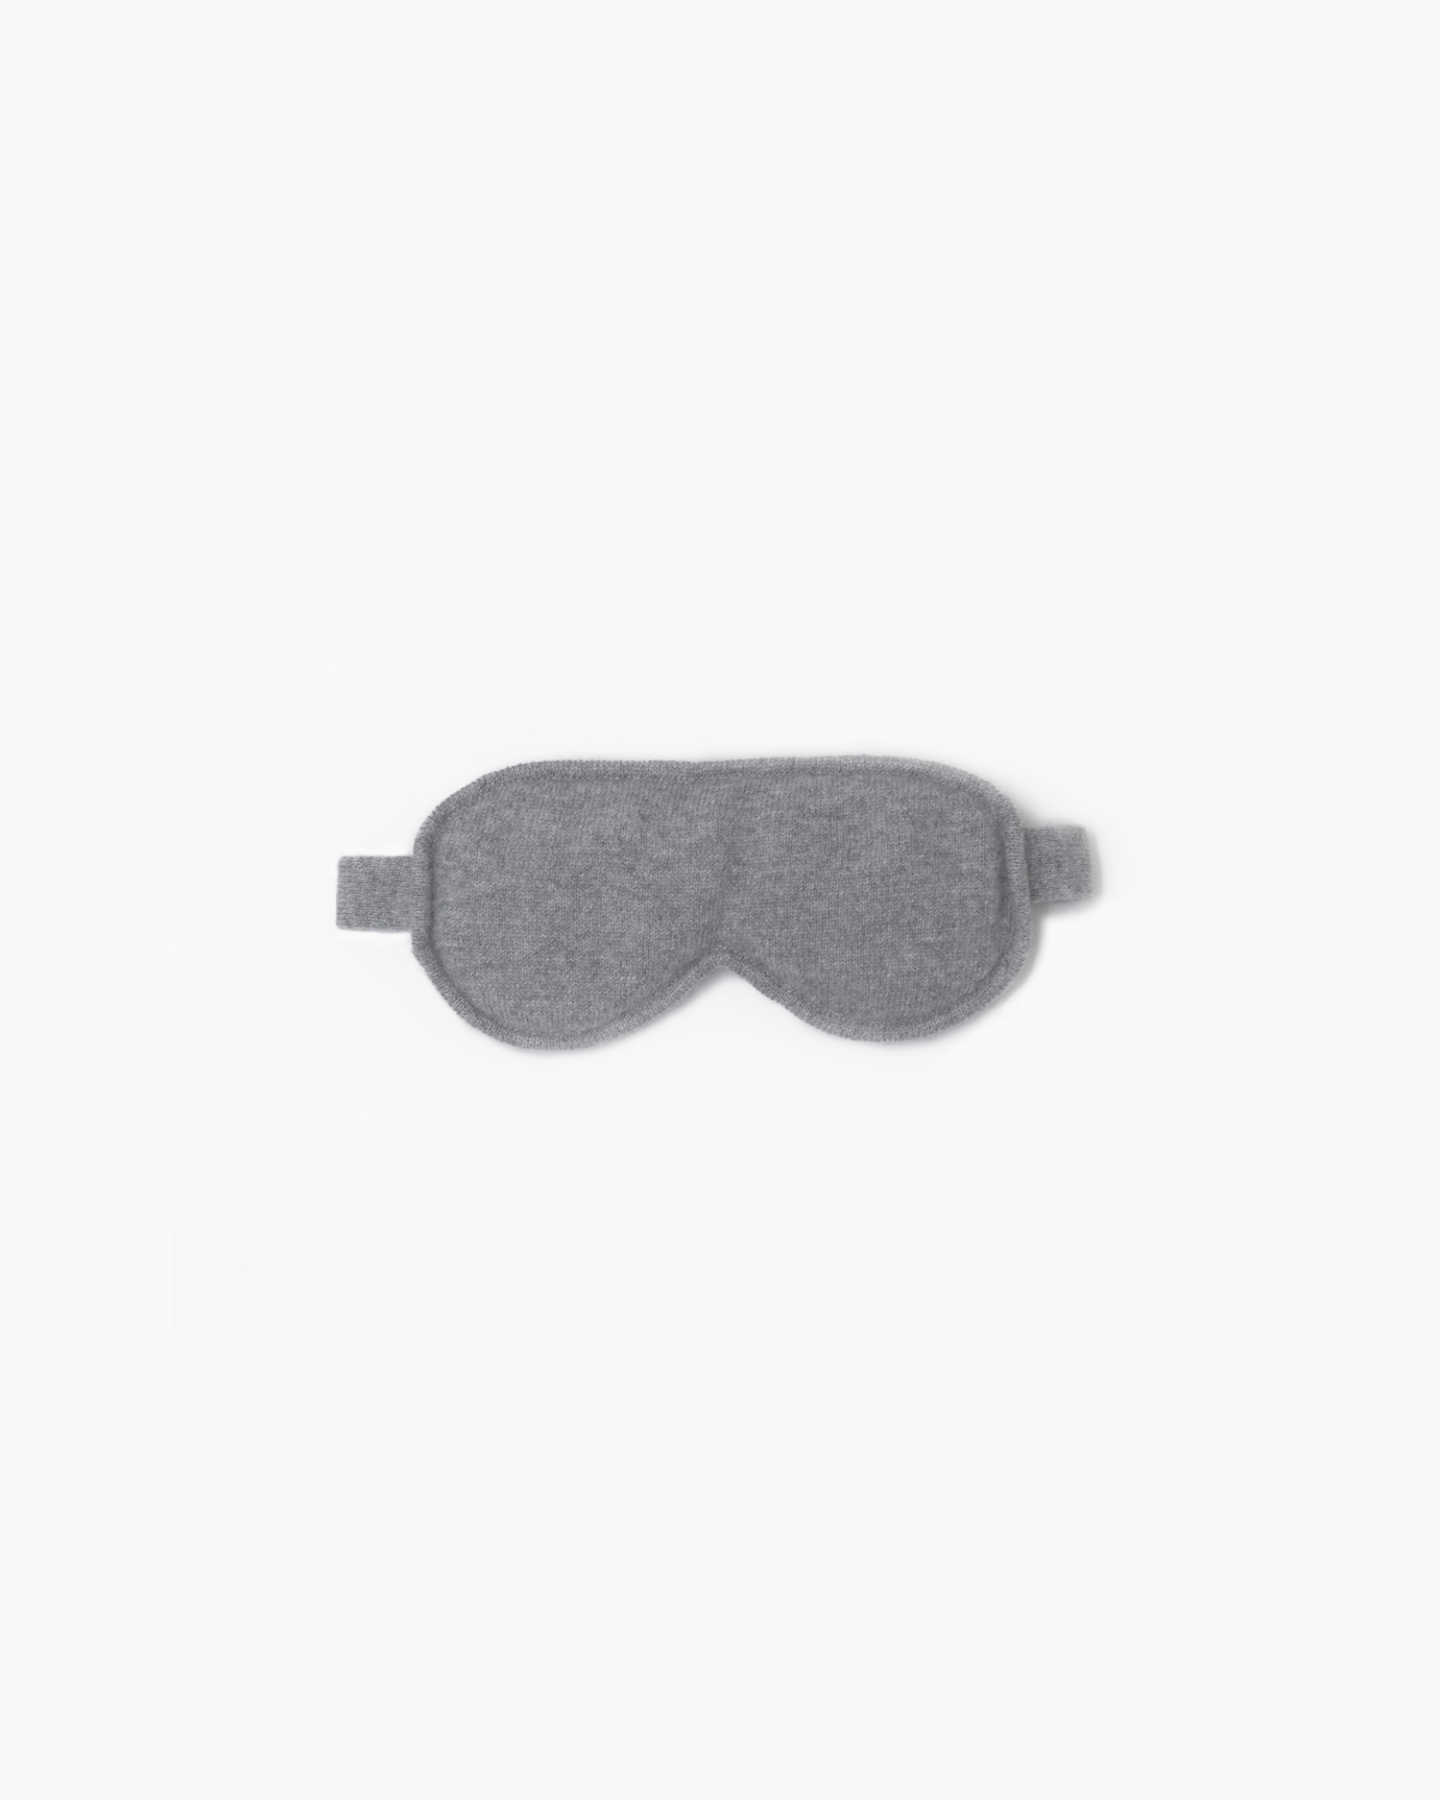 Mongolian Cashmere Sleep Mask - Heather Grey